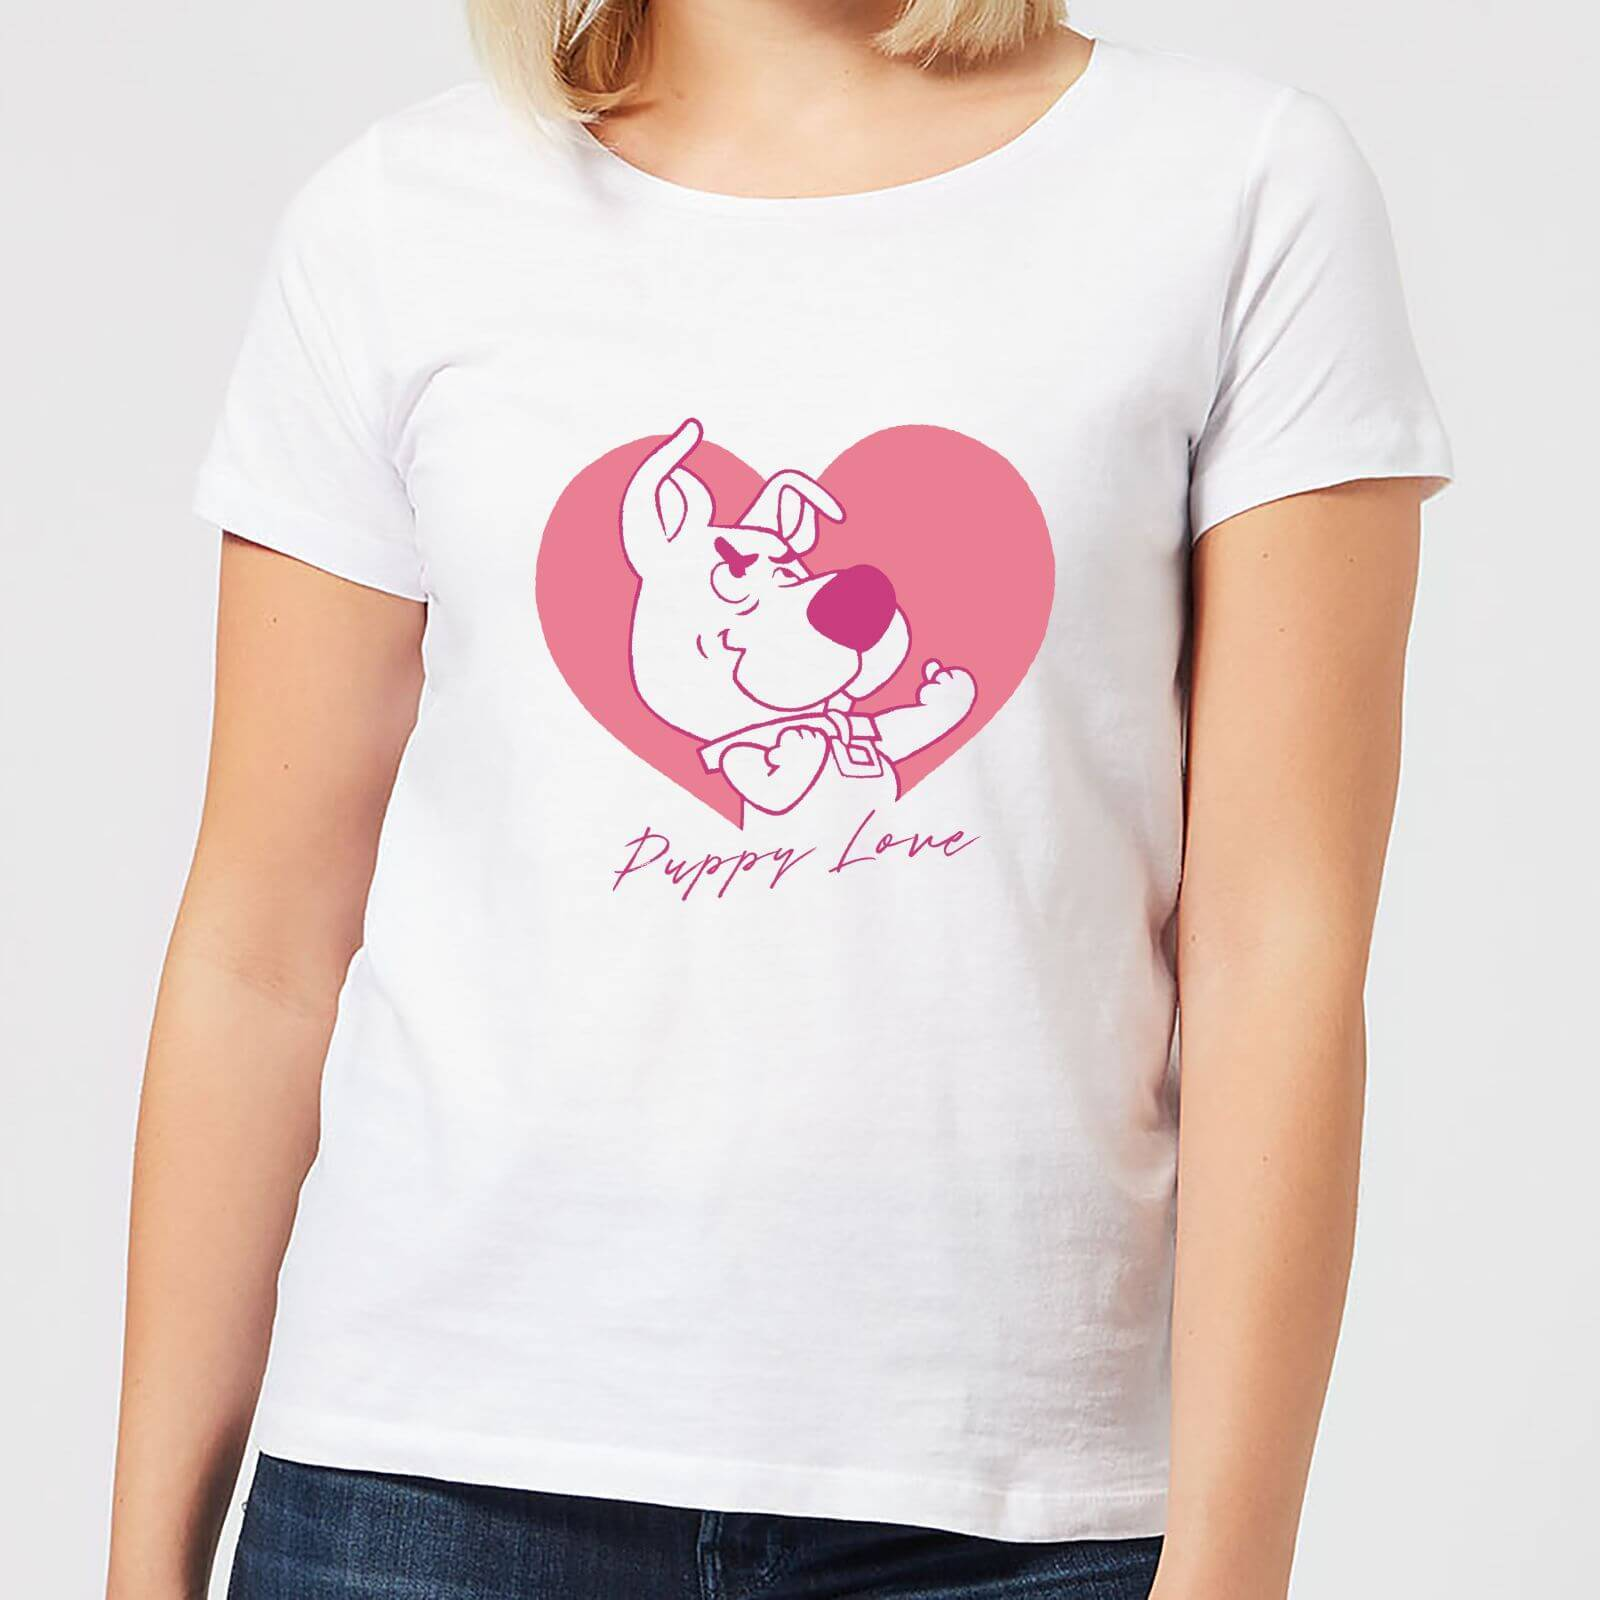 Scooby Doo Puppy Love Women's T-Shirt - White - 5XL - White